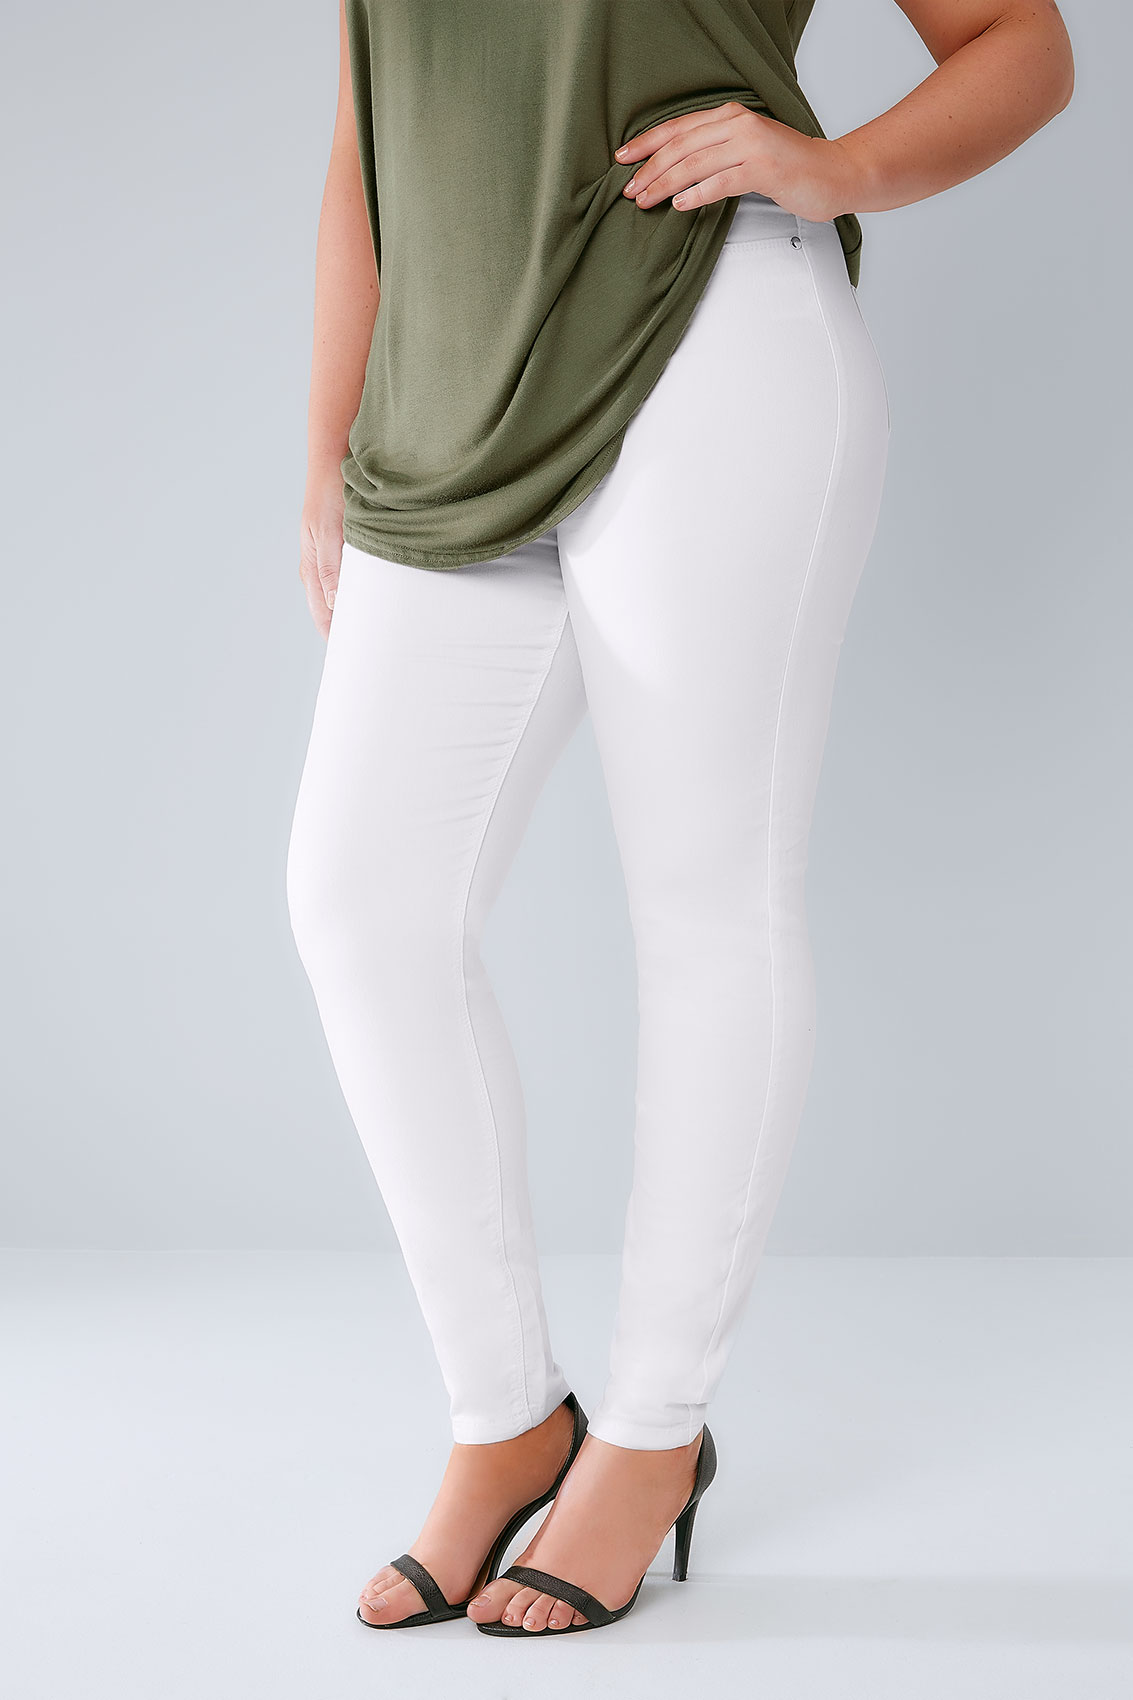 KanCan USA offers High stretch,denim jeans for modern woman,we have a vast variety of women's skinny jeans, boyfriend relaxed jeans, bootcut jeans and much more.